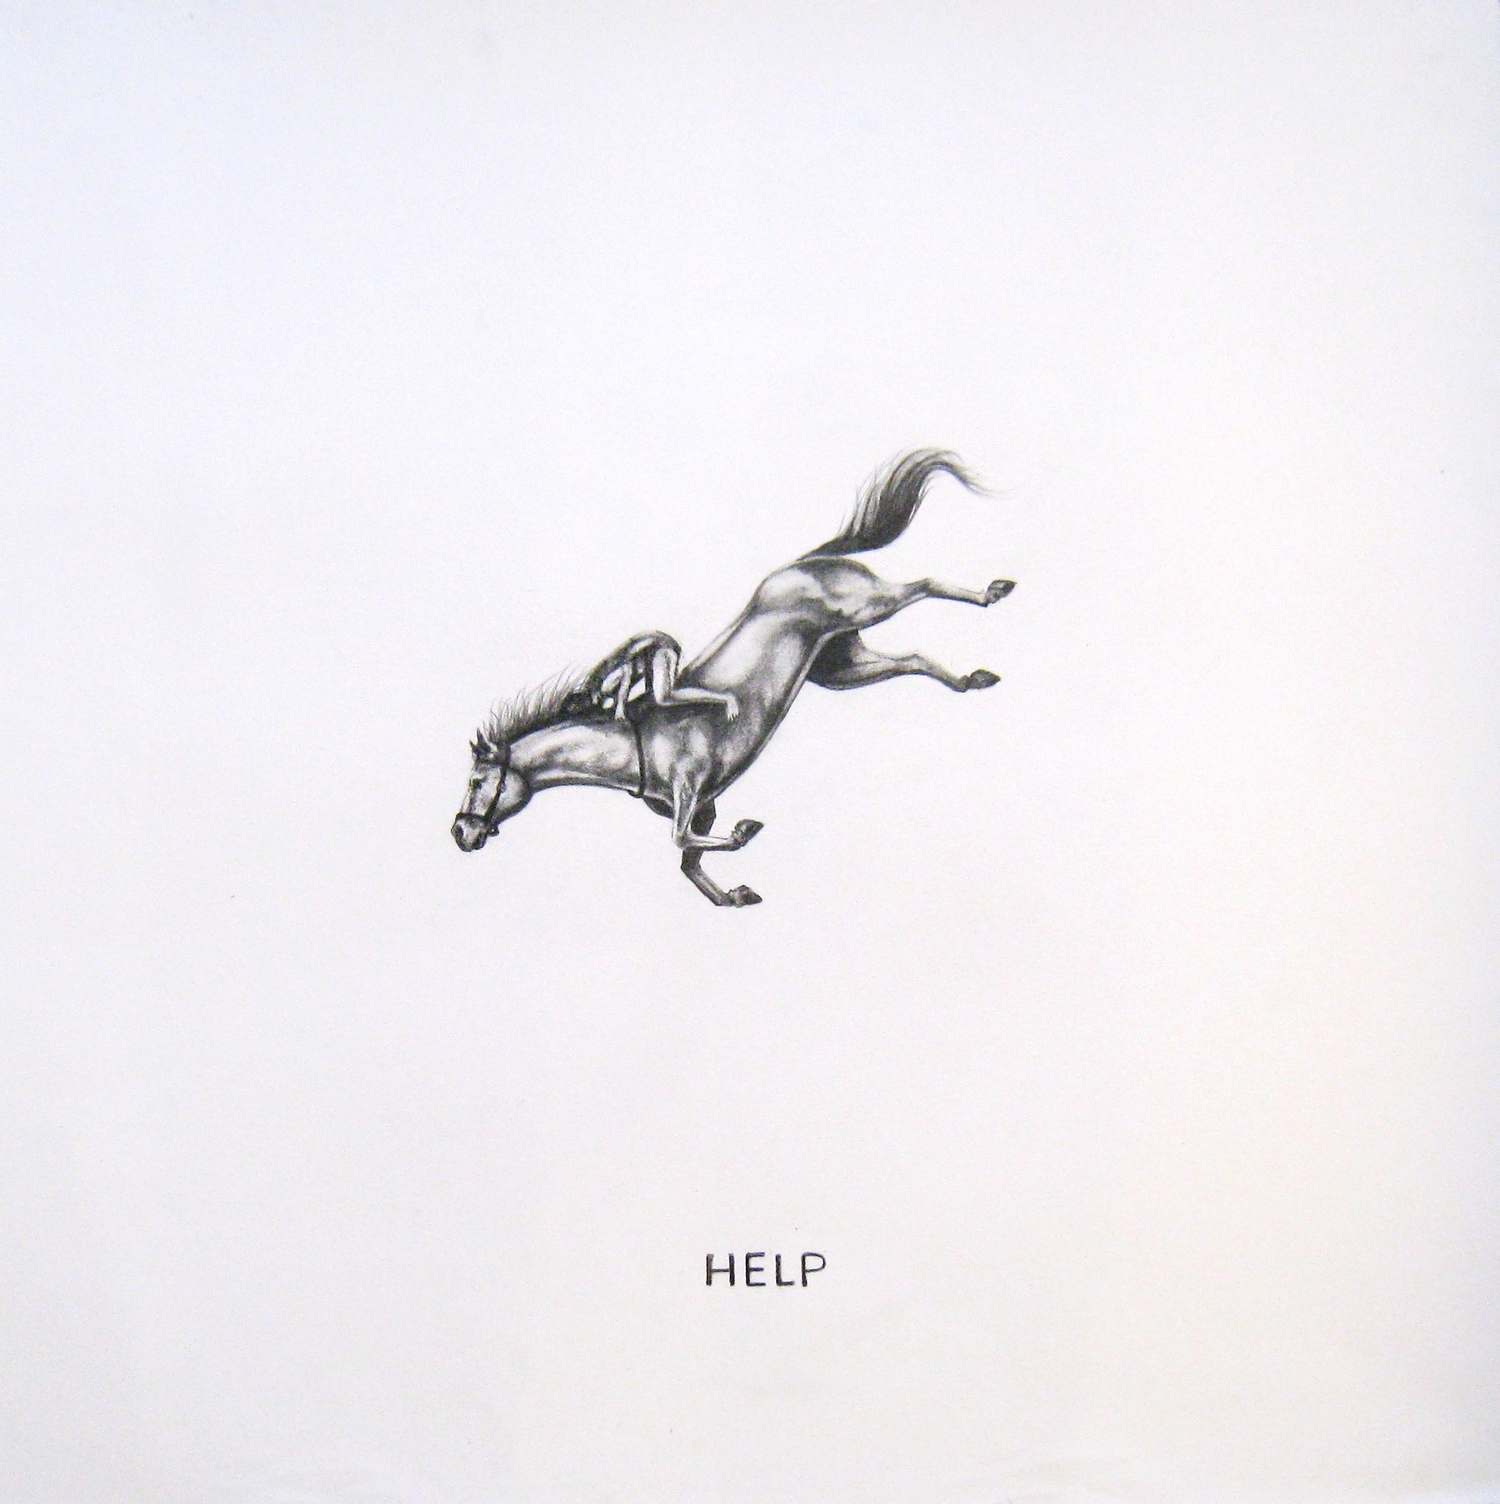 """Contingency 6(Leap), 2014  Graphite on Paper  20x20"""""""